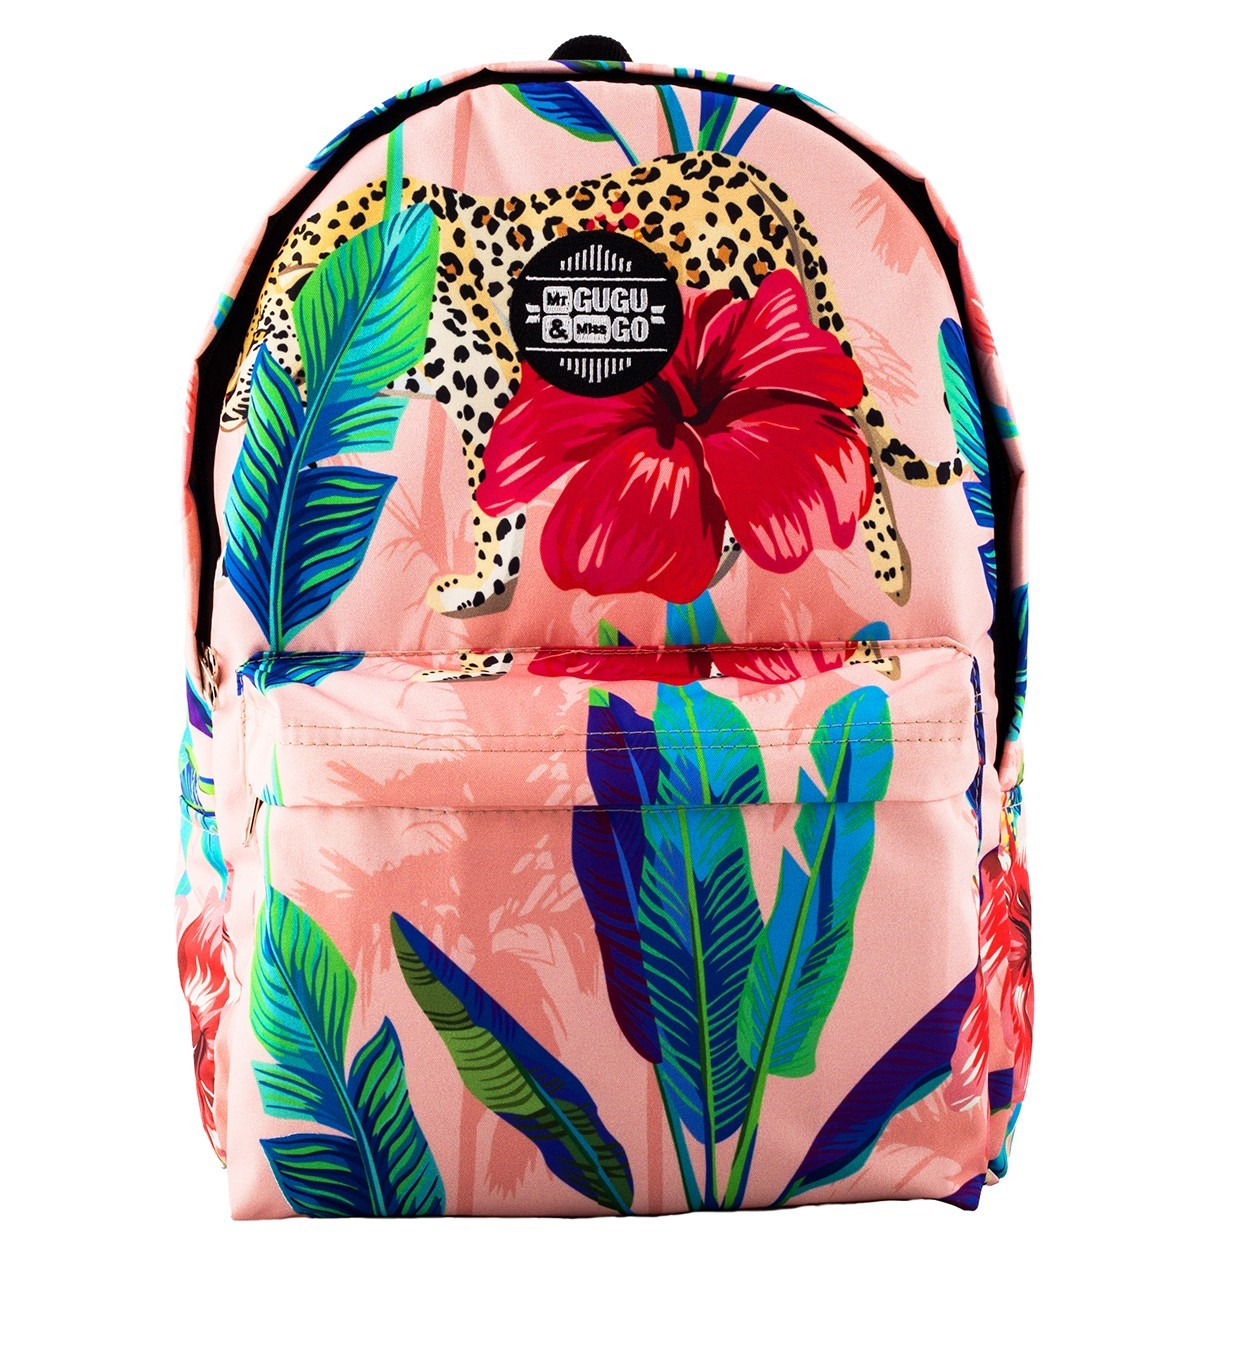 Printed Backpack Floral Cheetah Design | Mr. Gugu & Miss Go